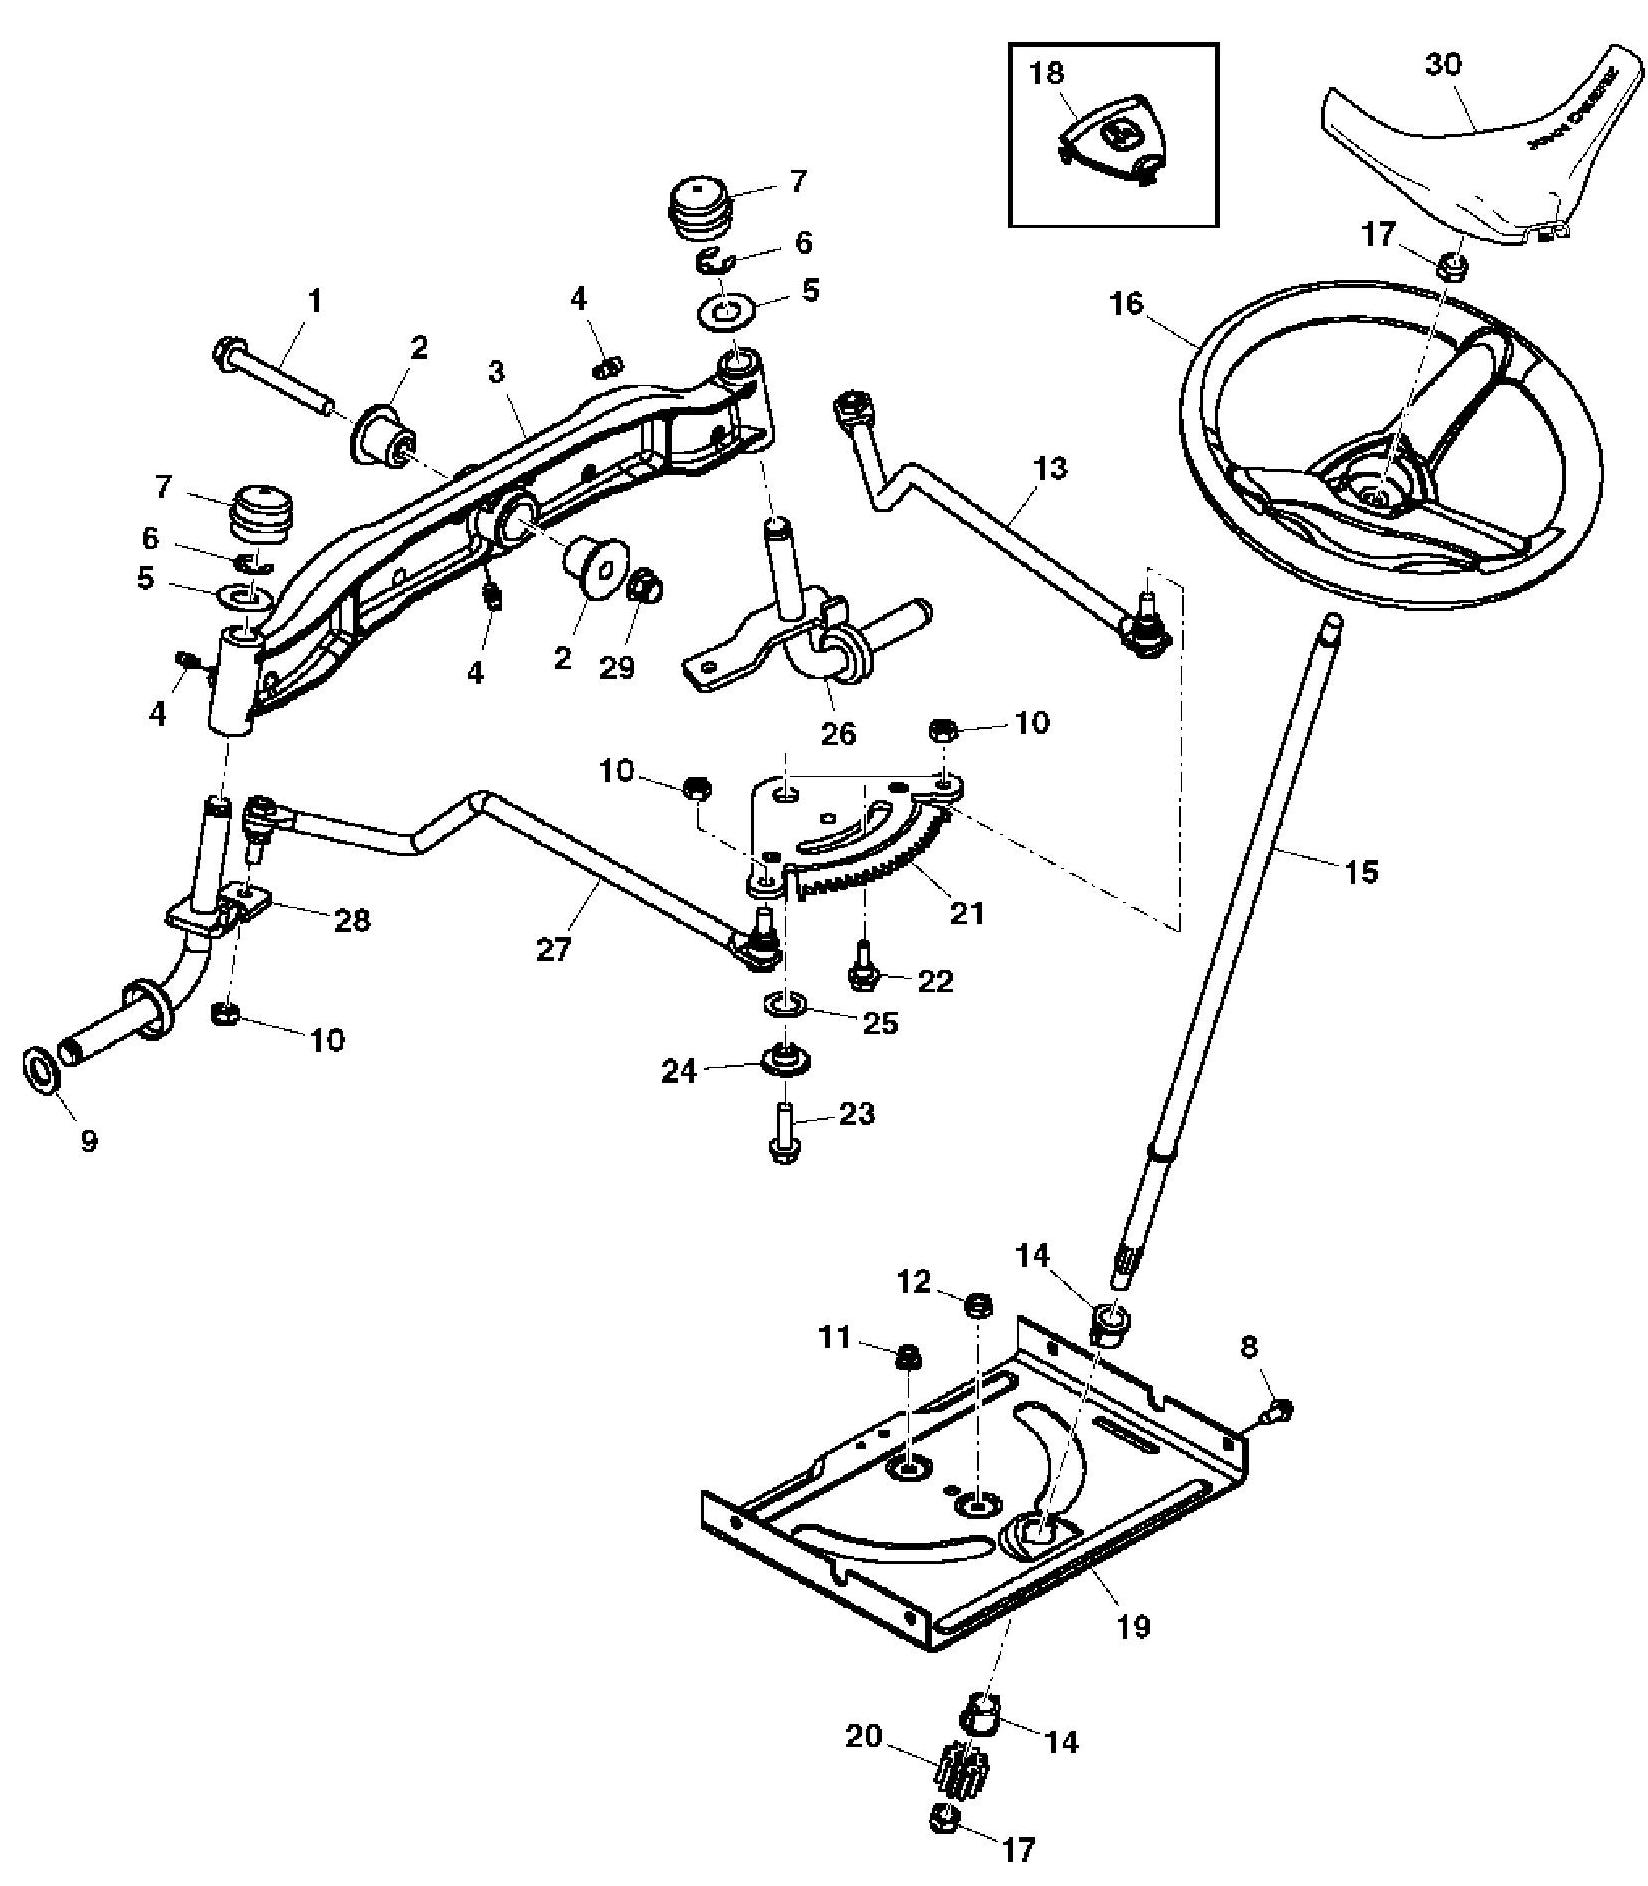 Awesome l130 wiring schematic ideas electrical diagram ideas